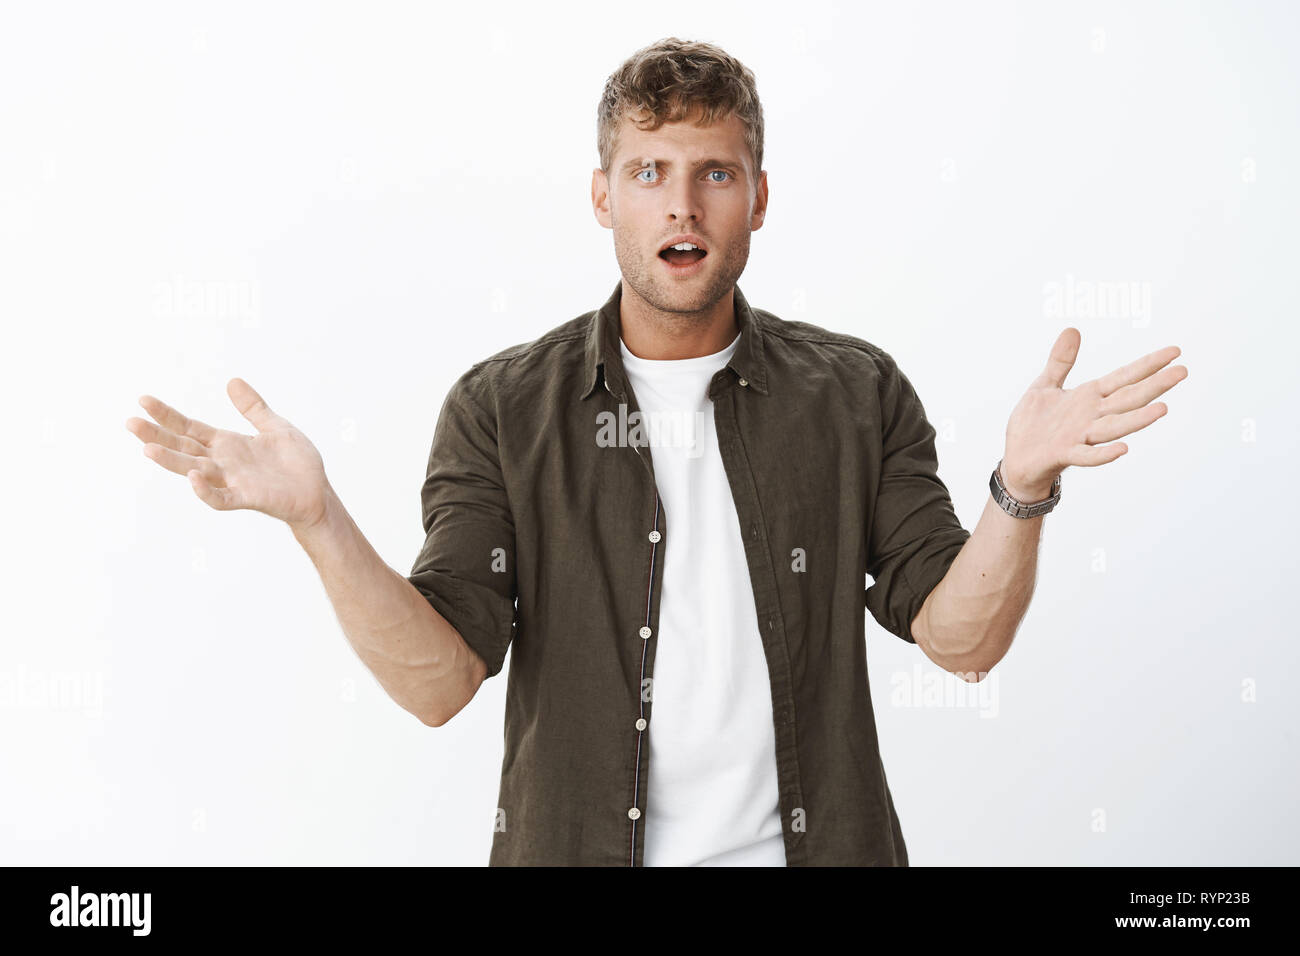 Confused handsome blond man with blue eyes raising hands sideways in dismay and clueless gesture being dumped unexpectedly standing questioned and - Stock Image